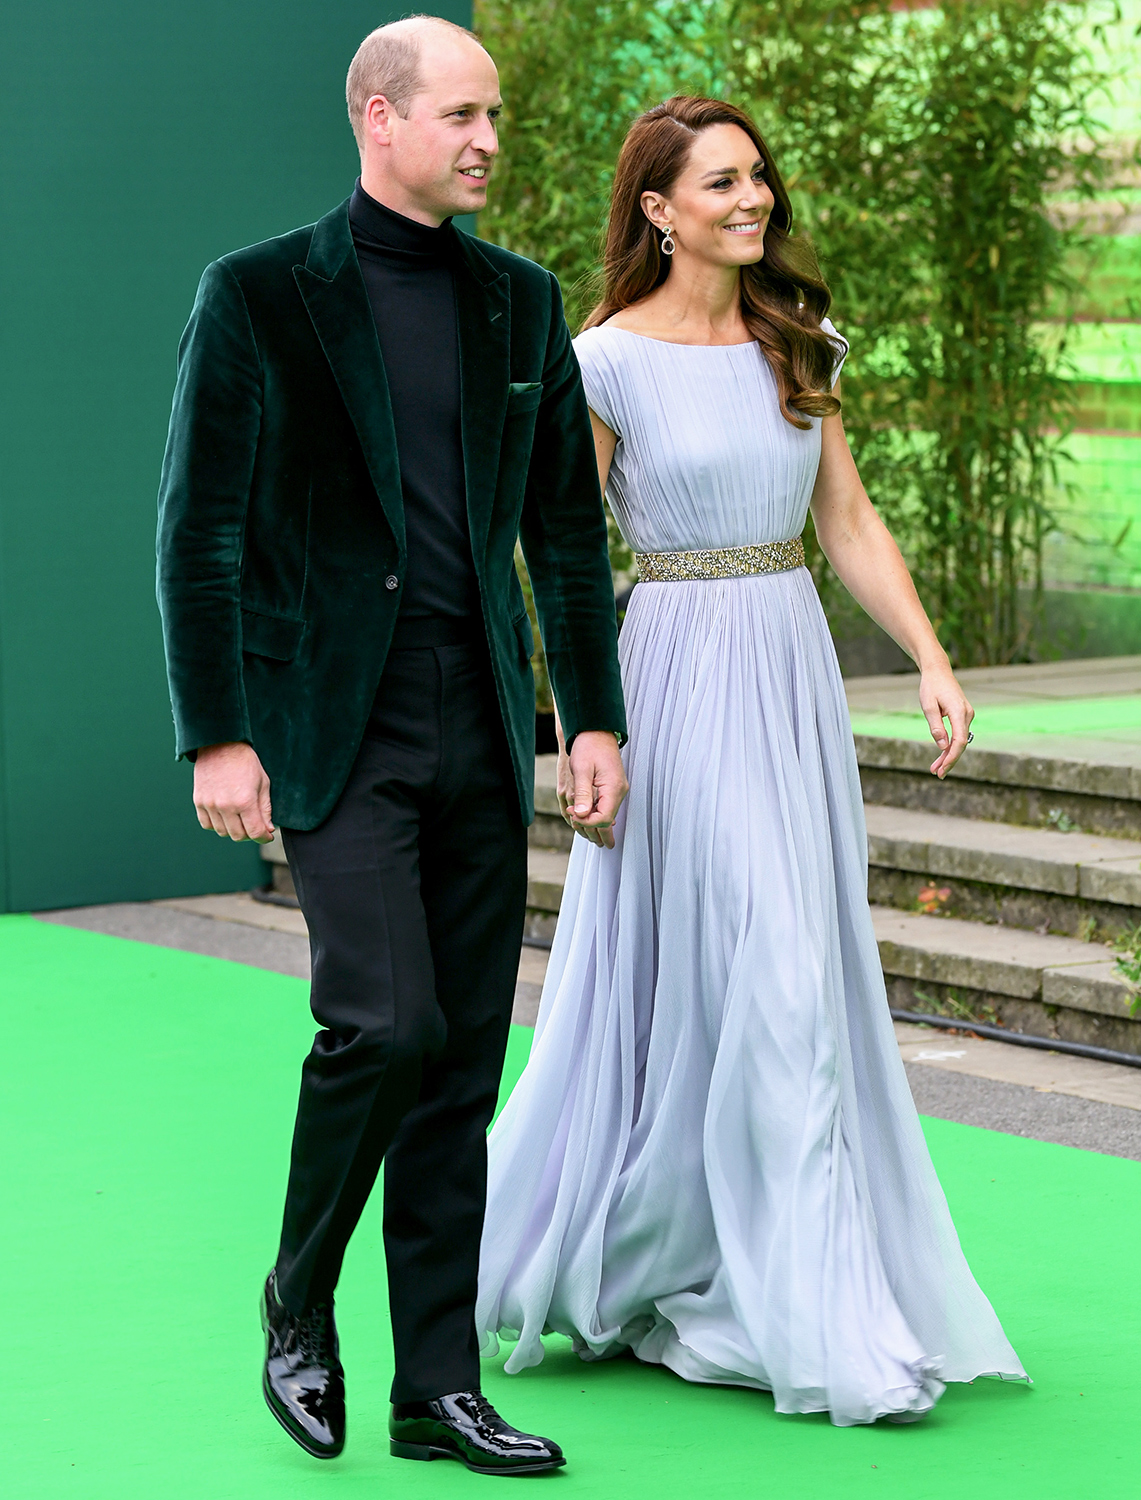 Prince William, Duke of Cambridge and Catherine, Duchess of Cambridge attend the Earthshot Prize 2021 at Alexandra Palace on October 17, 2021 in London, England.